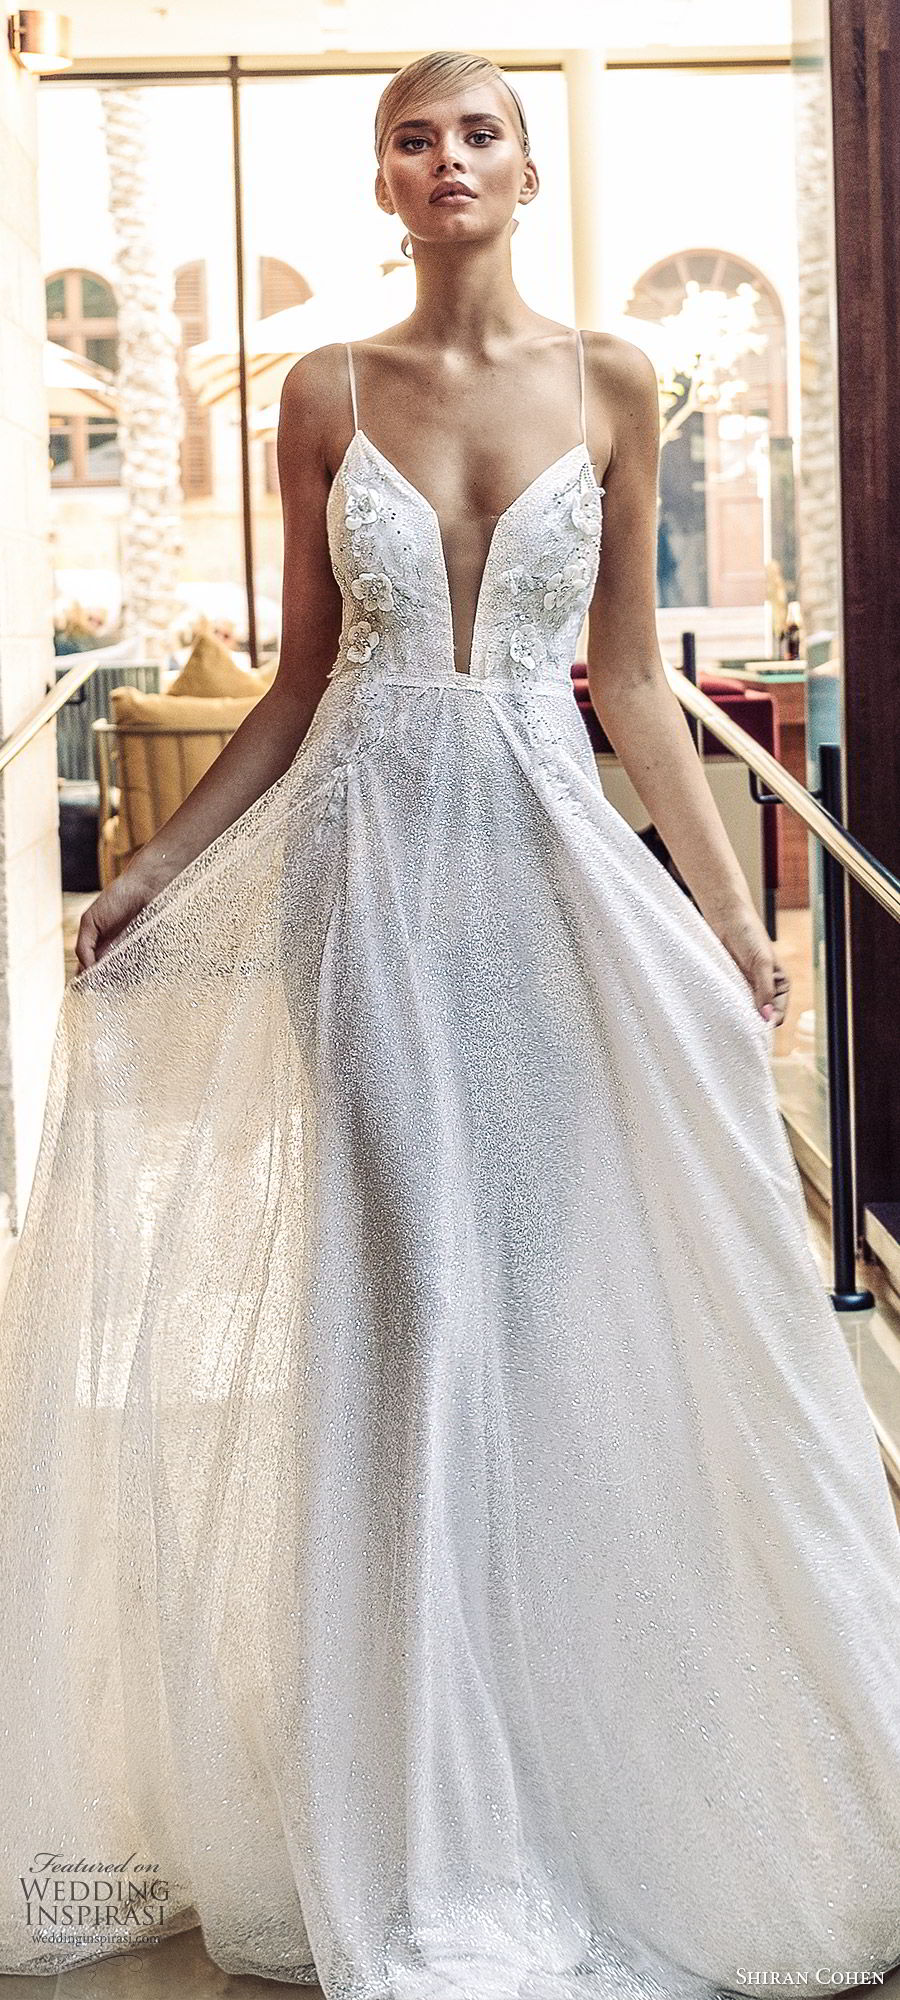 shiran cohen 2019 bridal sleeveless thin straps sweetheart plunging neckline fully embellished a line wedding dress low back romantic glitzy (7) zv